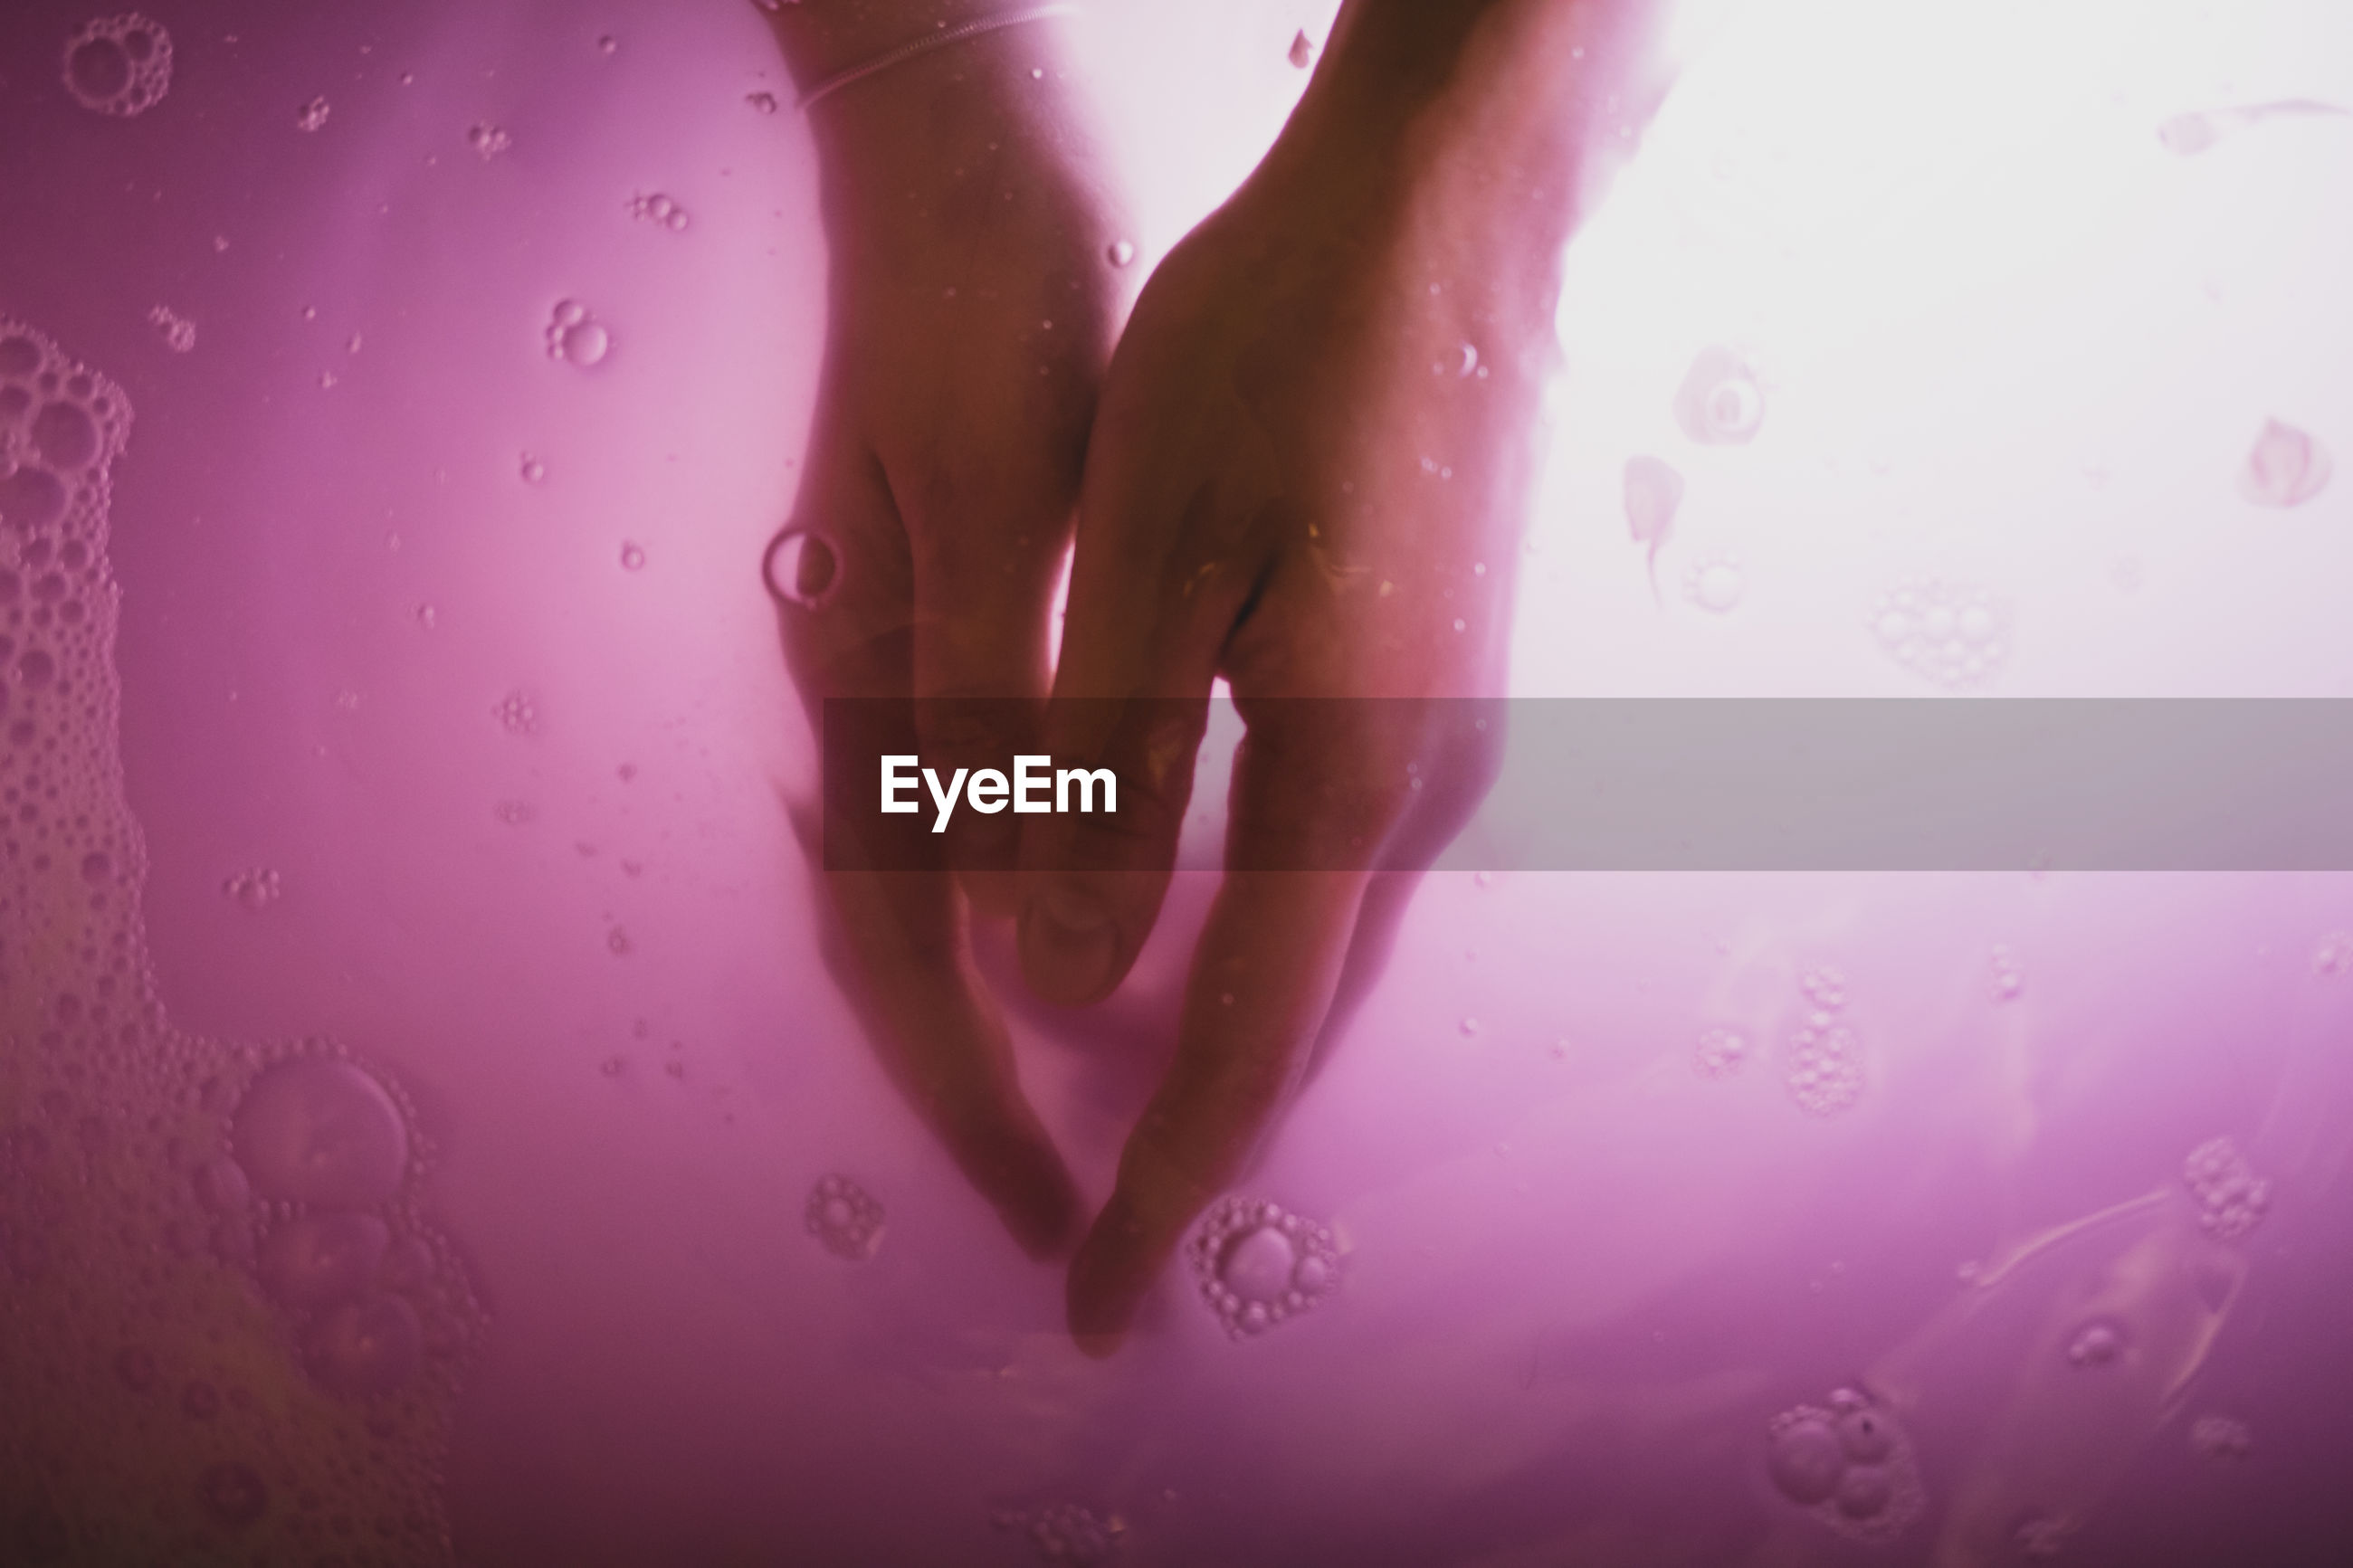 Cropped hands of young woman in pink water